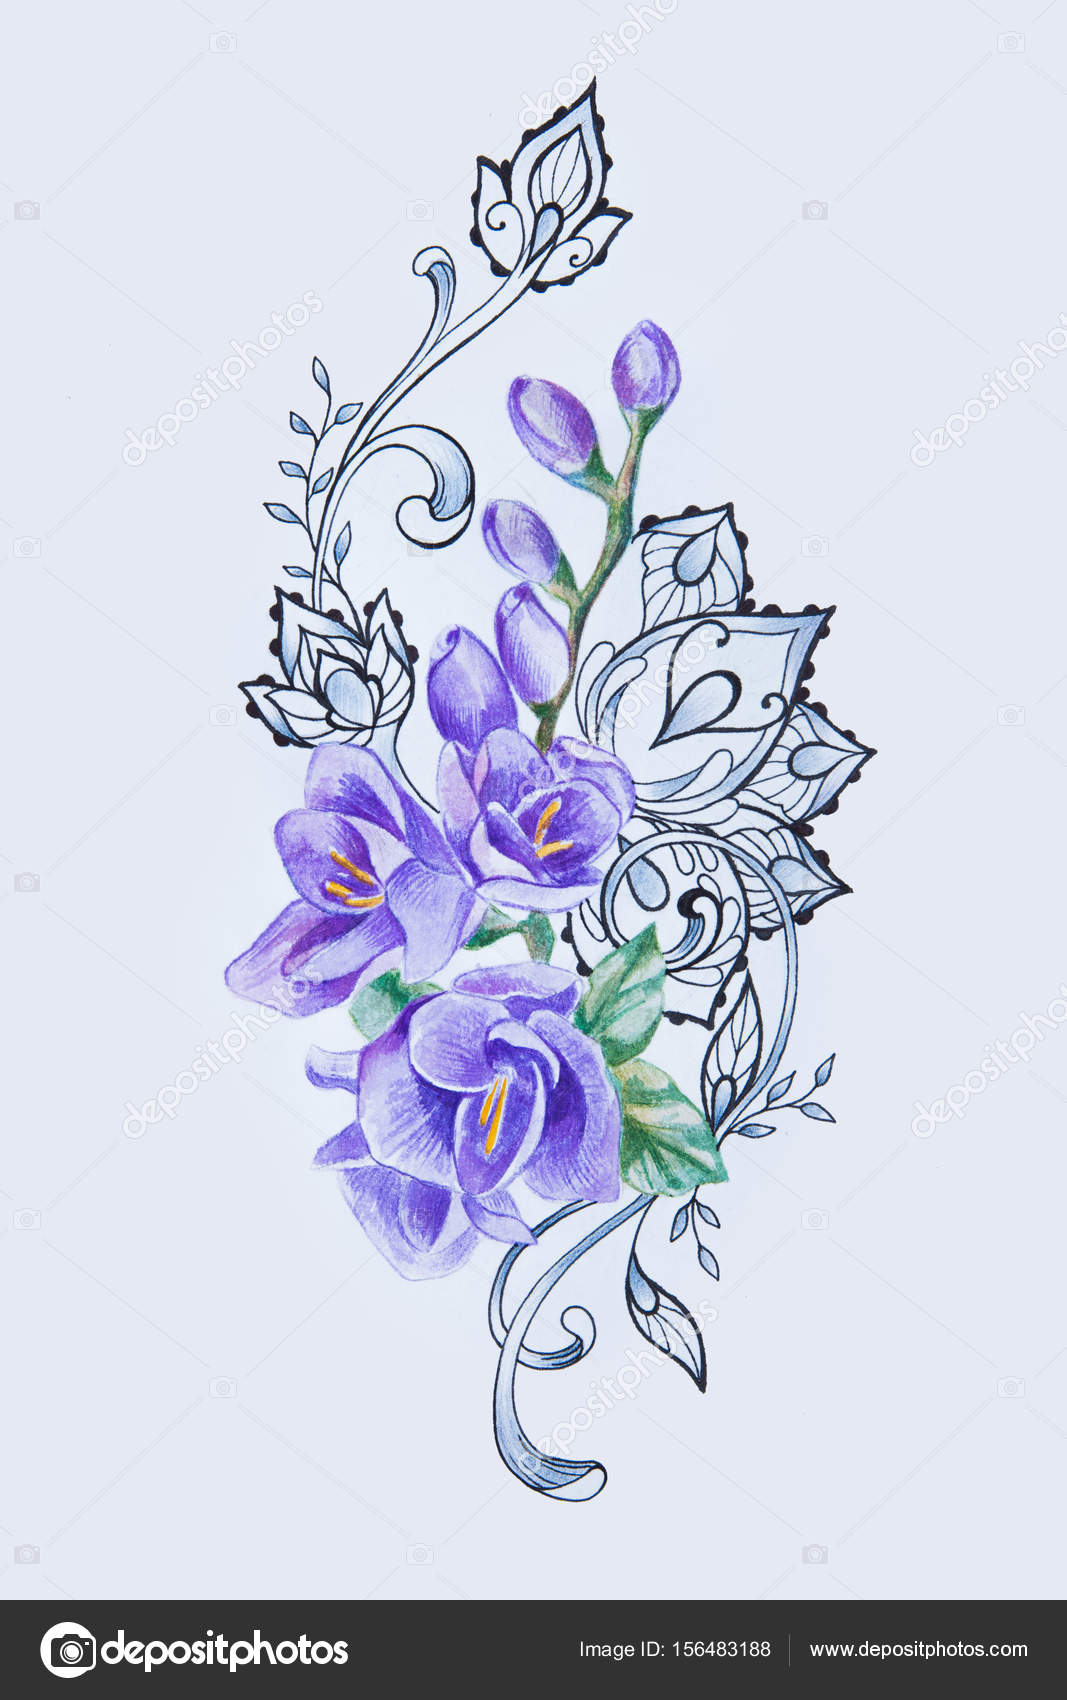 d0730fd13 A sketch of a beautiful purple freesia with patterns on a white background.–  stock image